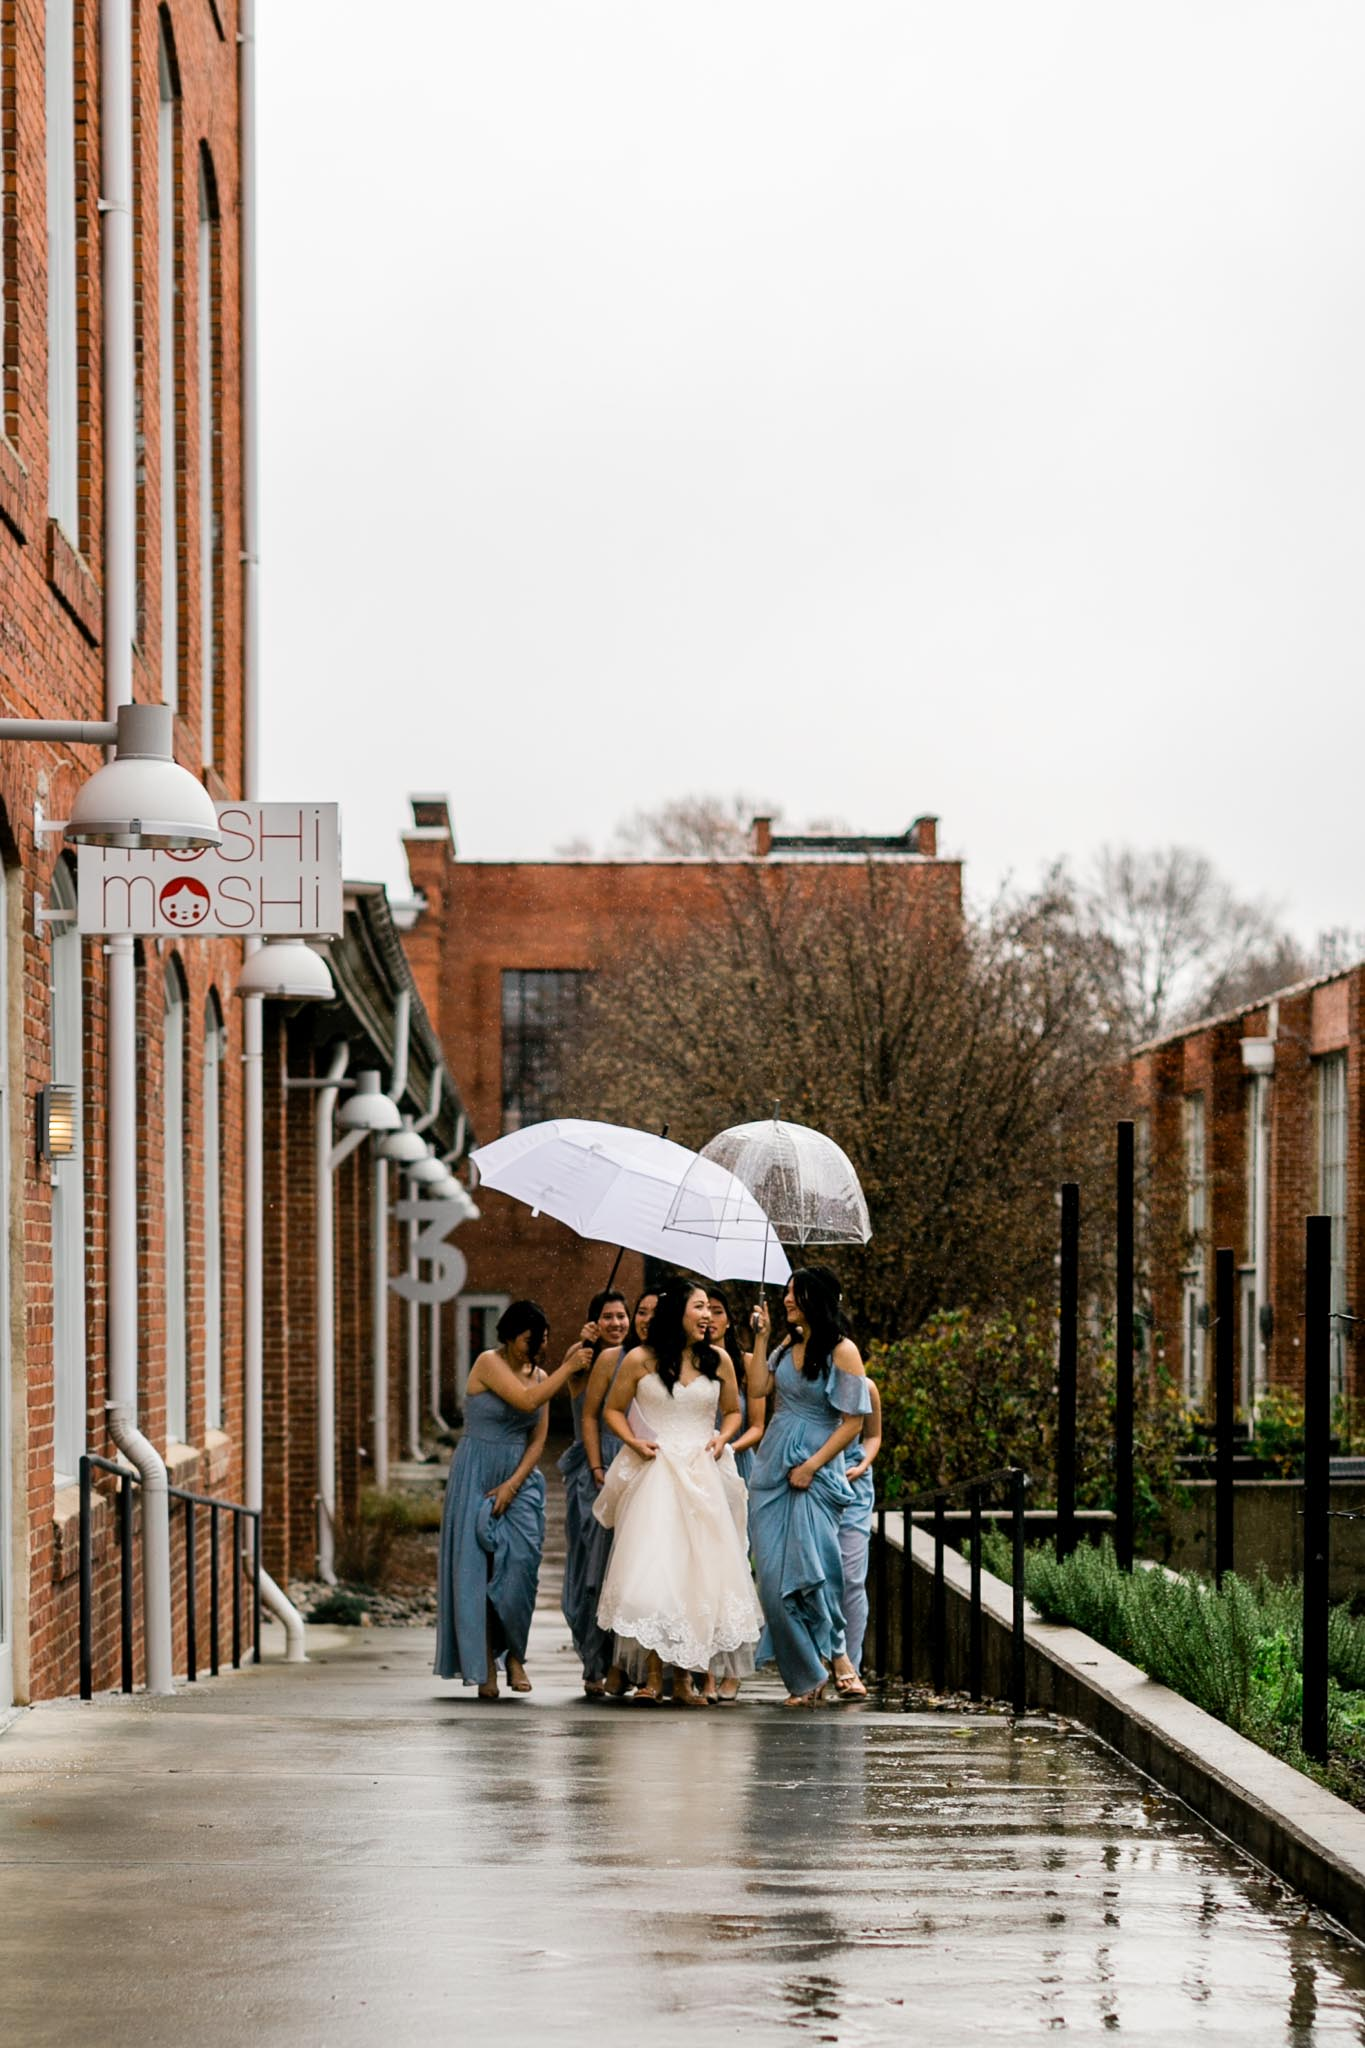 Bridal party walking in the rain at The Cotton Room | Durham Wedding Photographer | By G. Lin Photography